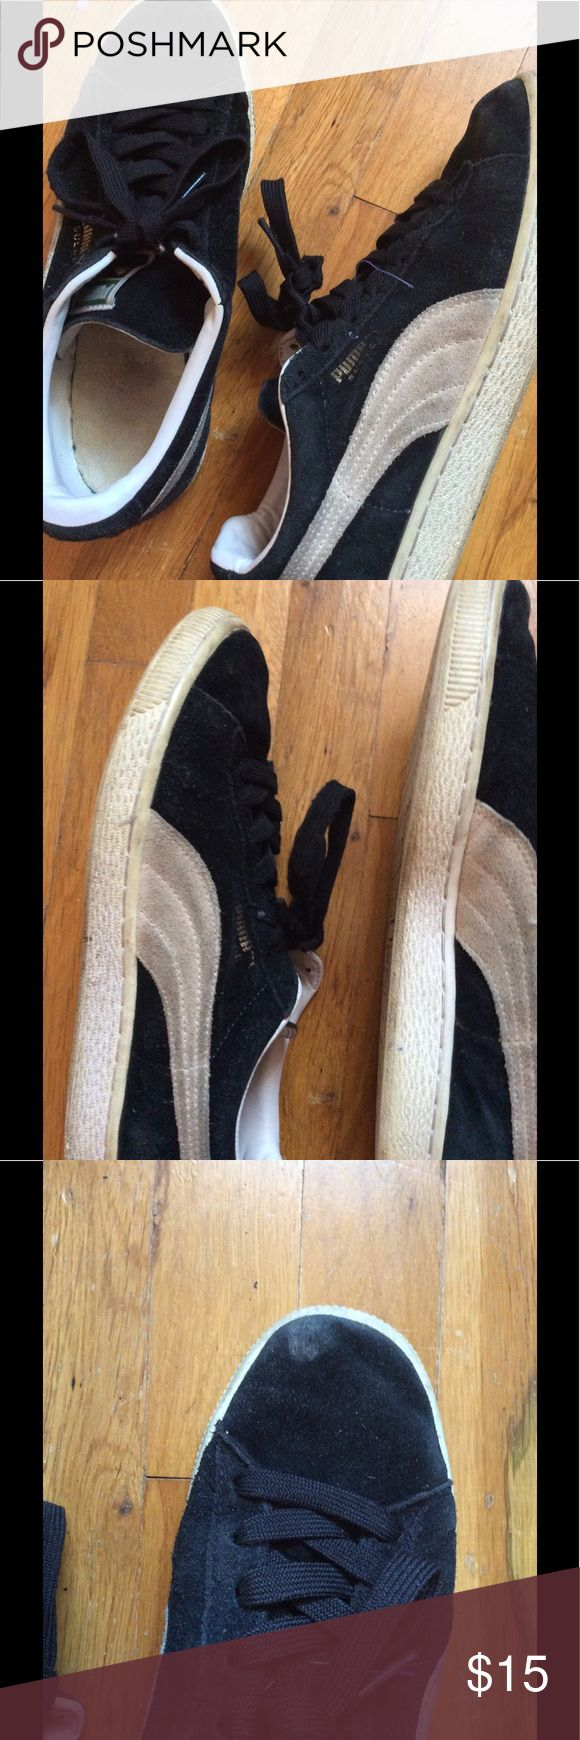 Puma Suede Classic Black : Pre owned Black Puma Shoes . Men Sizes 8.5 | Womens 10 . I owned these for a long time , but these can be cleaned up the right way Puma Shoes Sneakers